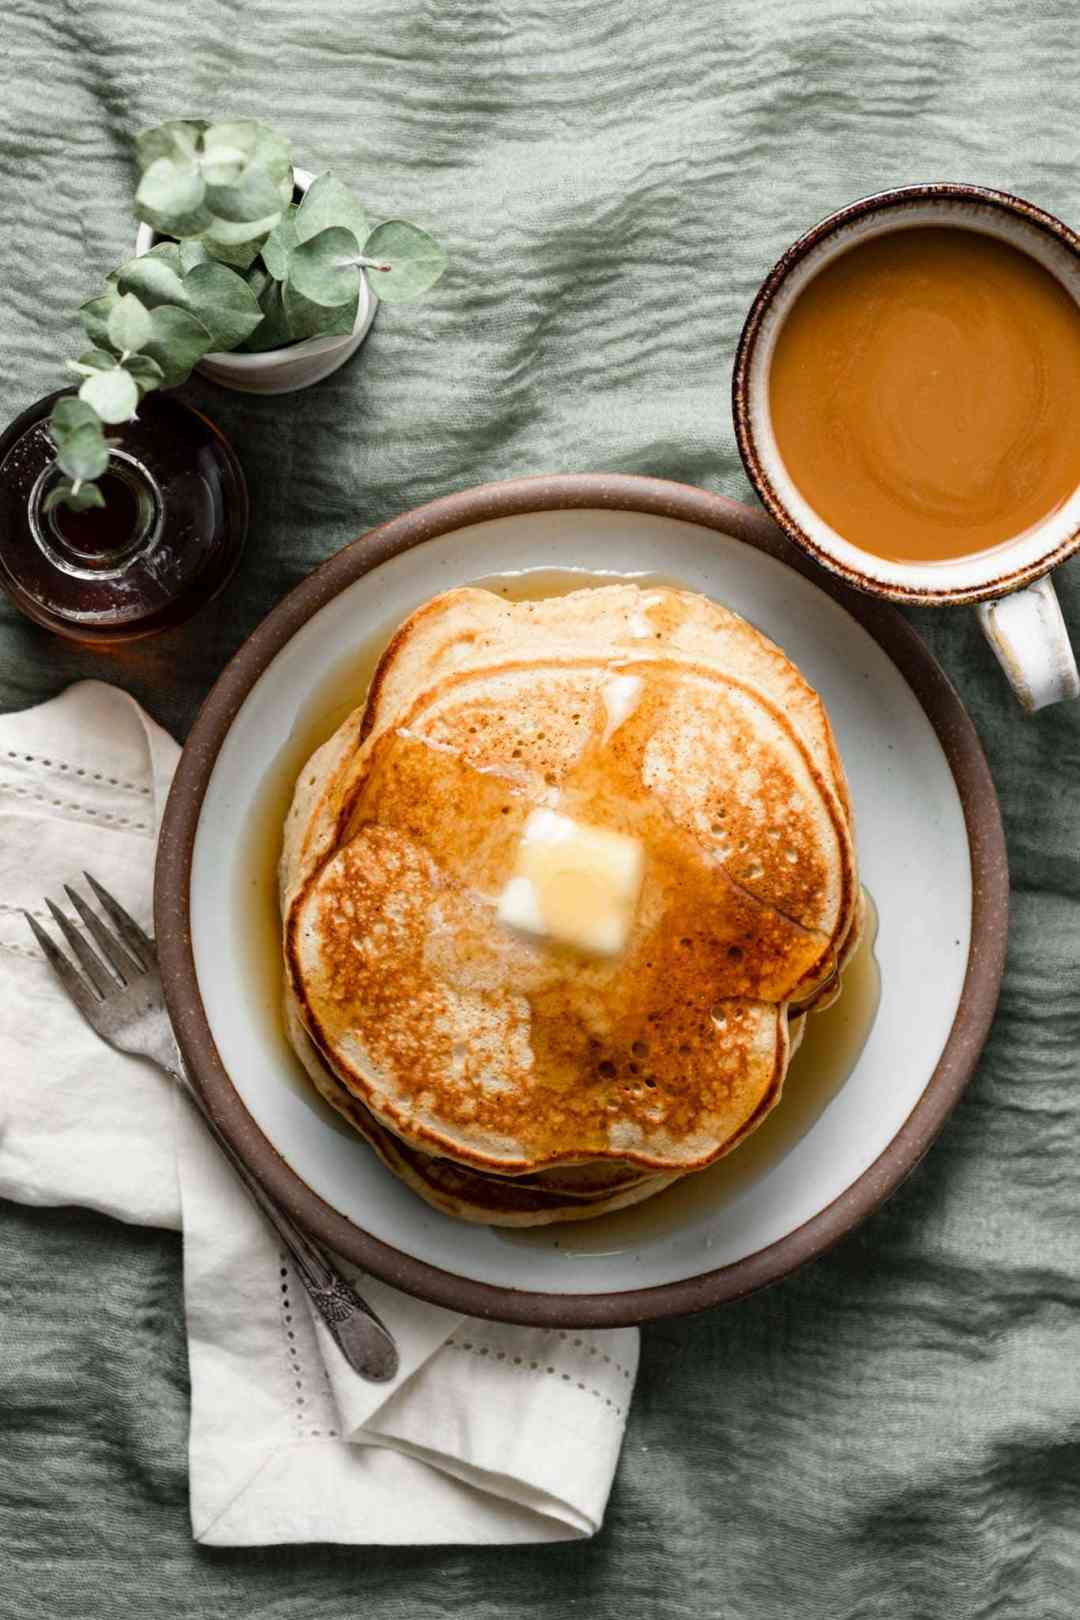 Breakfast pancakes made with eggnog, cinnamon, and nutmeg